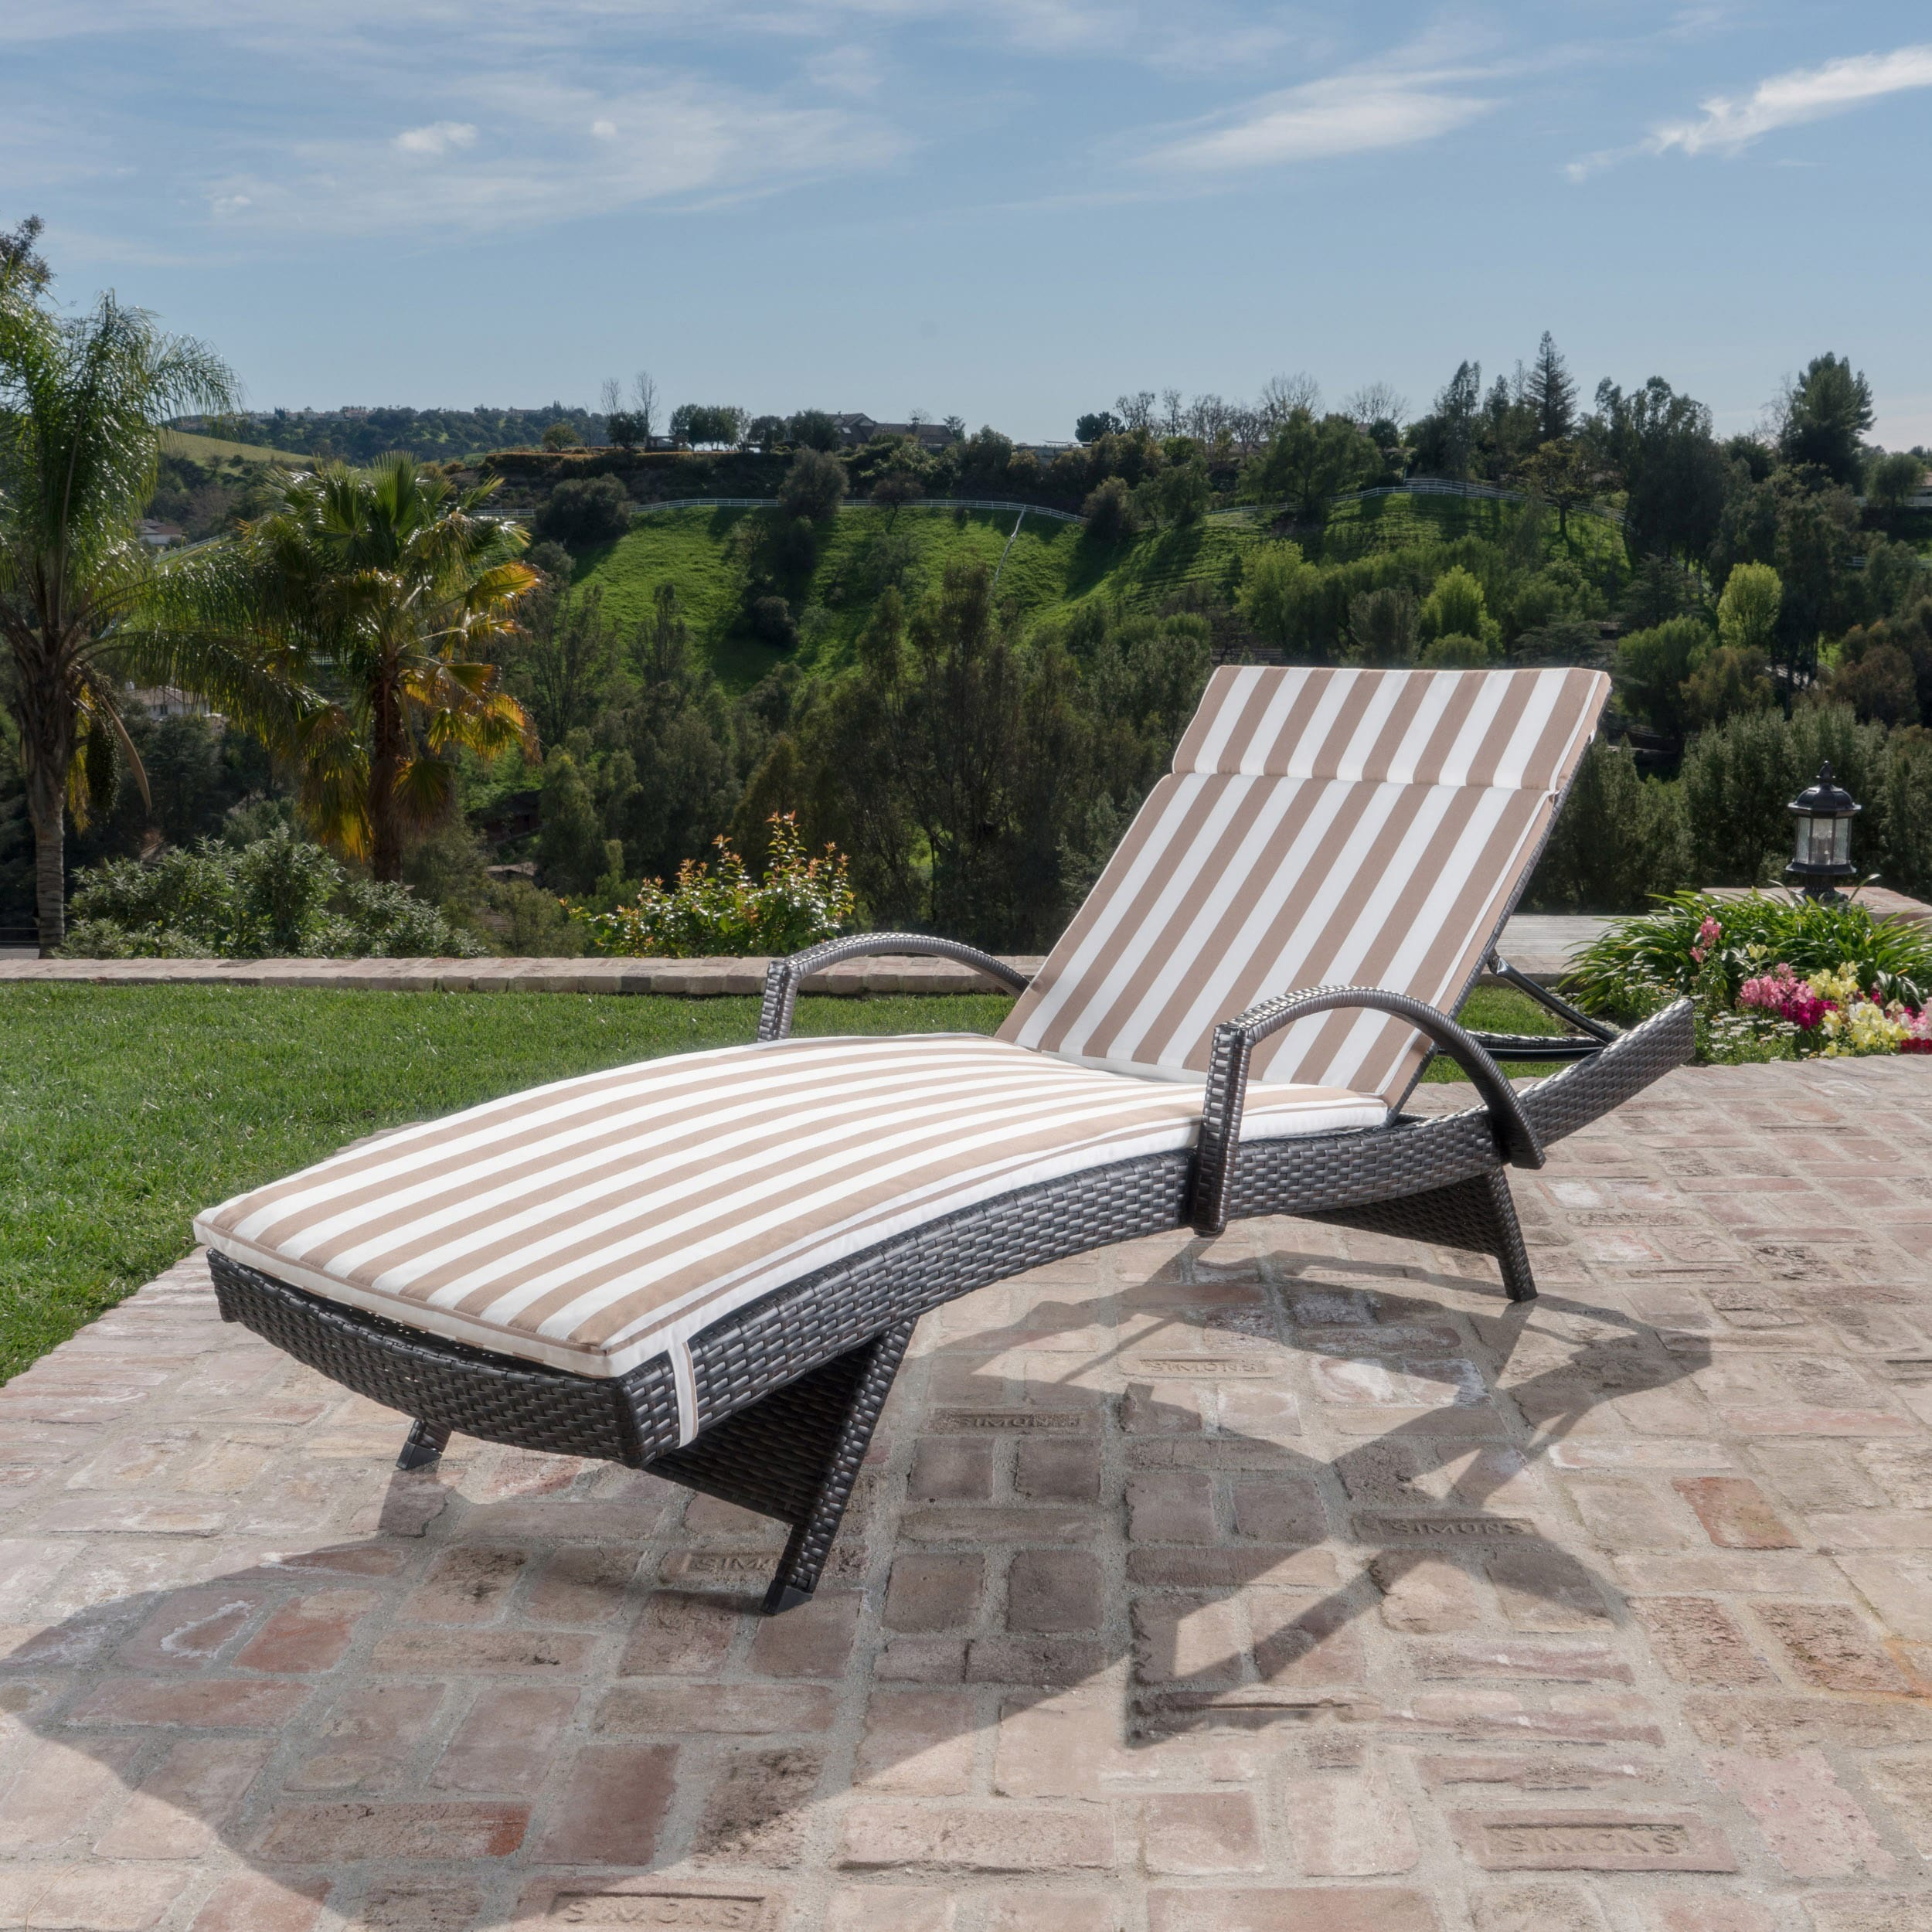 furniture ashley cushion ottoman costco double sofa hanging leather sale chair mattress cushions chaise for cheap at x with bath amazing wheels lowes lounge south online hinges bed longue outdoor beyond full africa and kopen patio of chairs size